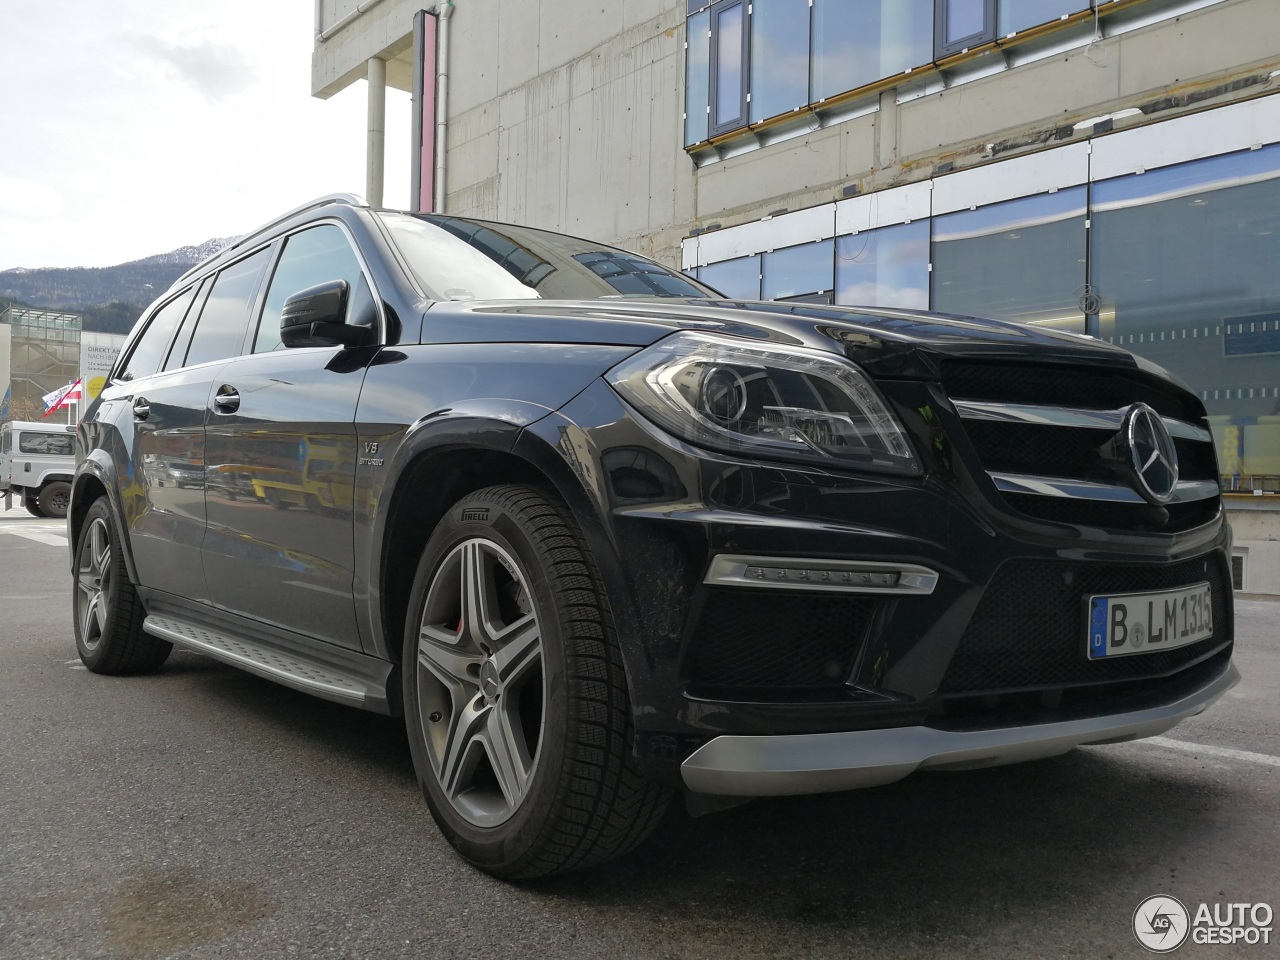 Mercedes benz gl 63 amg x166 19 march 2017 autogespot for 2017 mercedes benz gl450